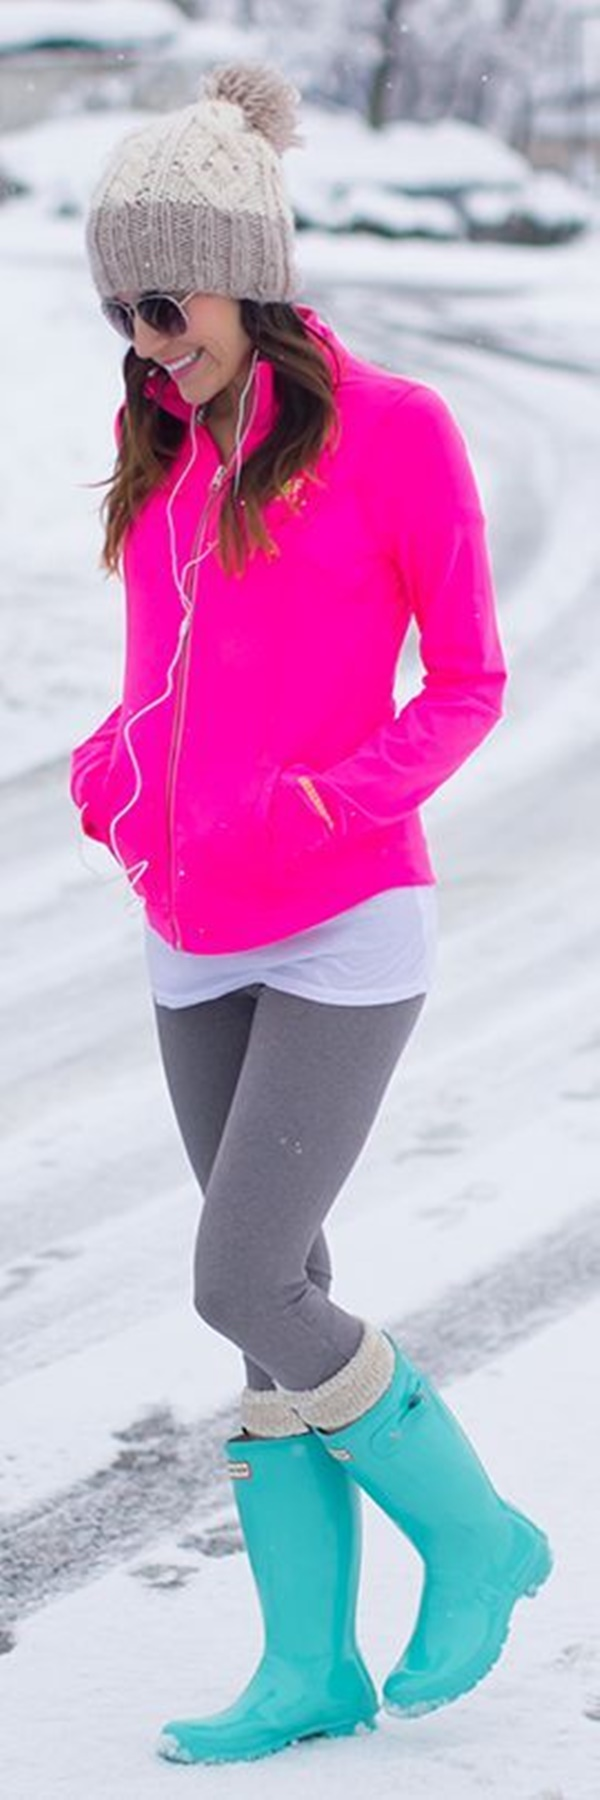 neon outfits (1)